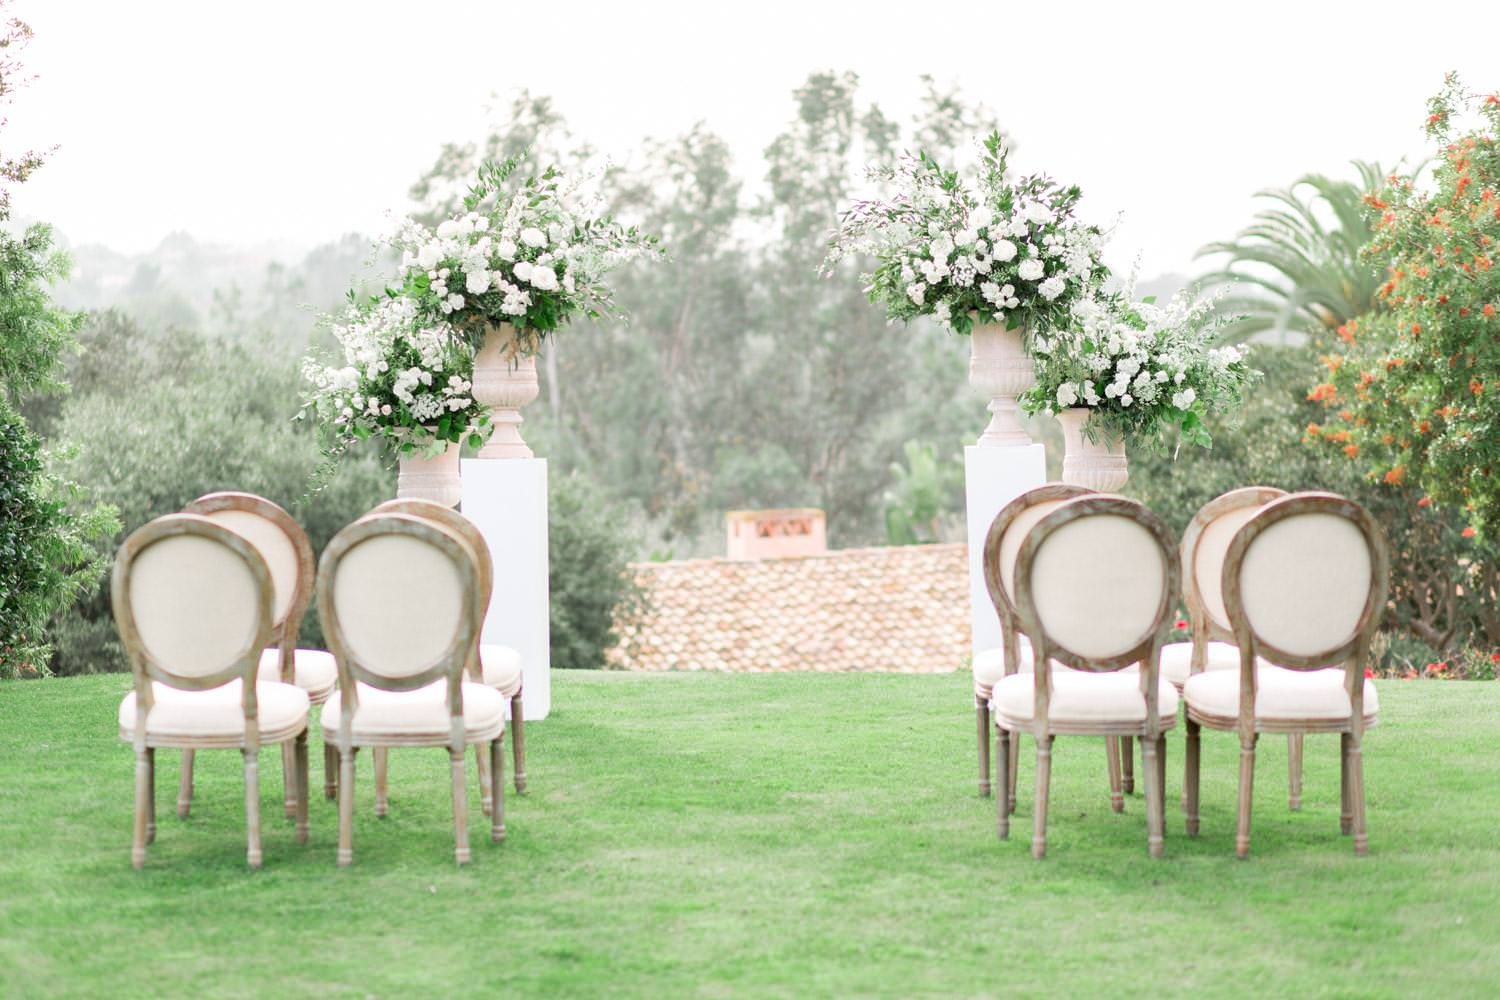 Rancho Valencia Wedding Photography by Cavin Elizabeth, wedding ceremony with gorgeous neutral chairs and large floral arrangements of white and green